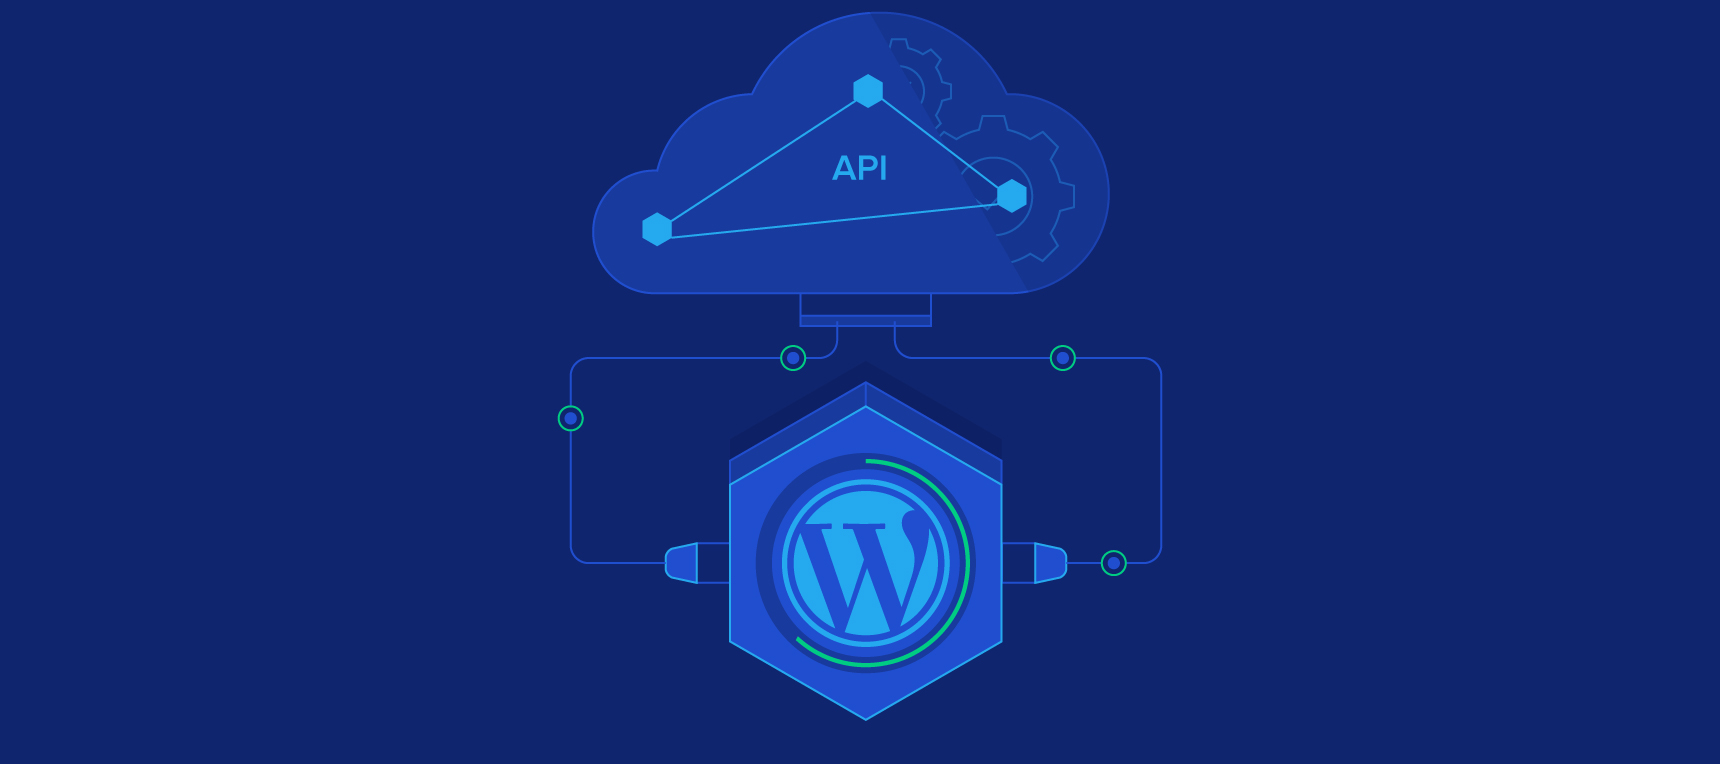 wordpress-api-post-request